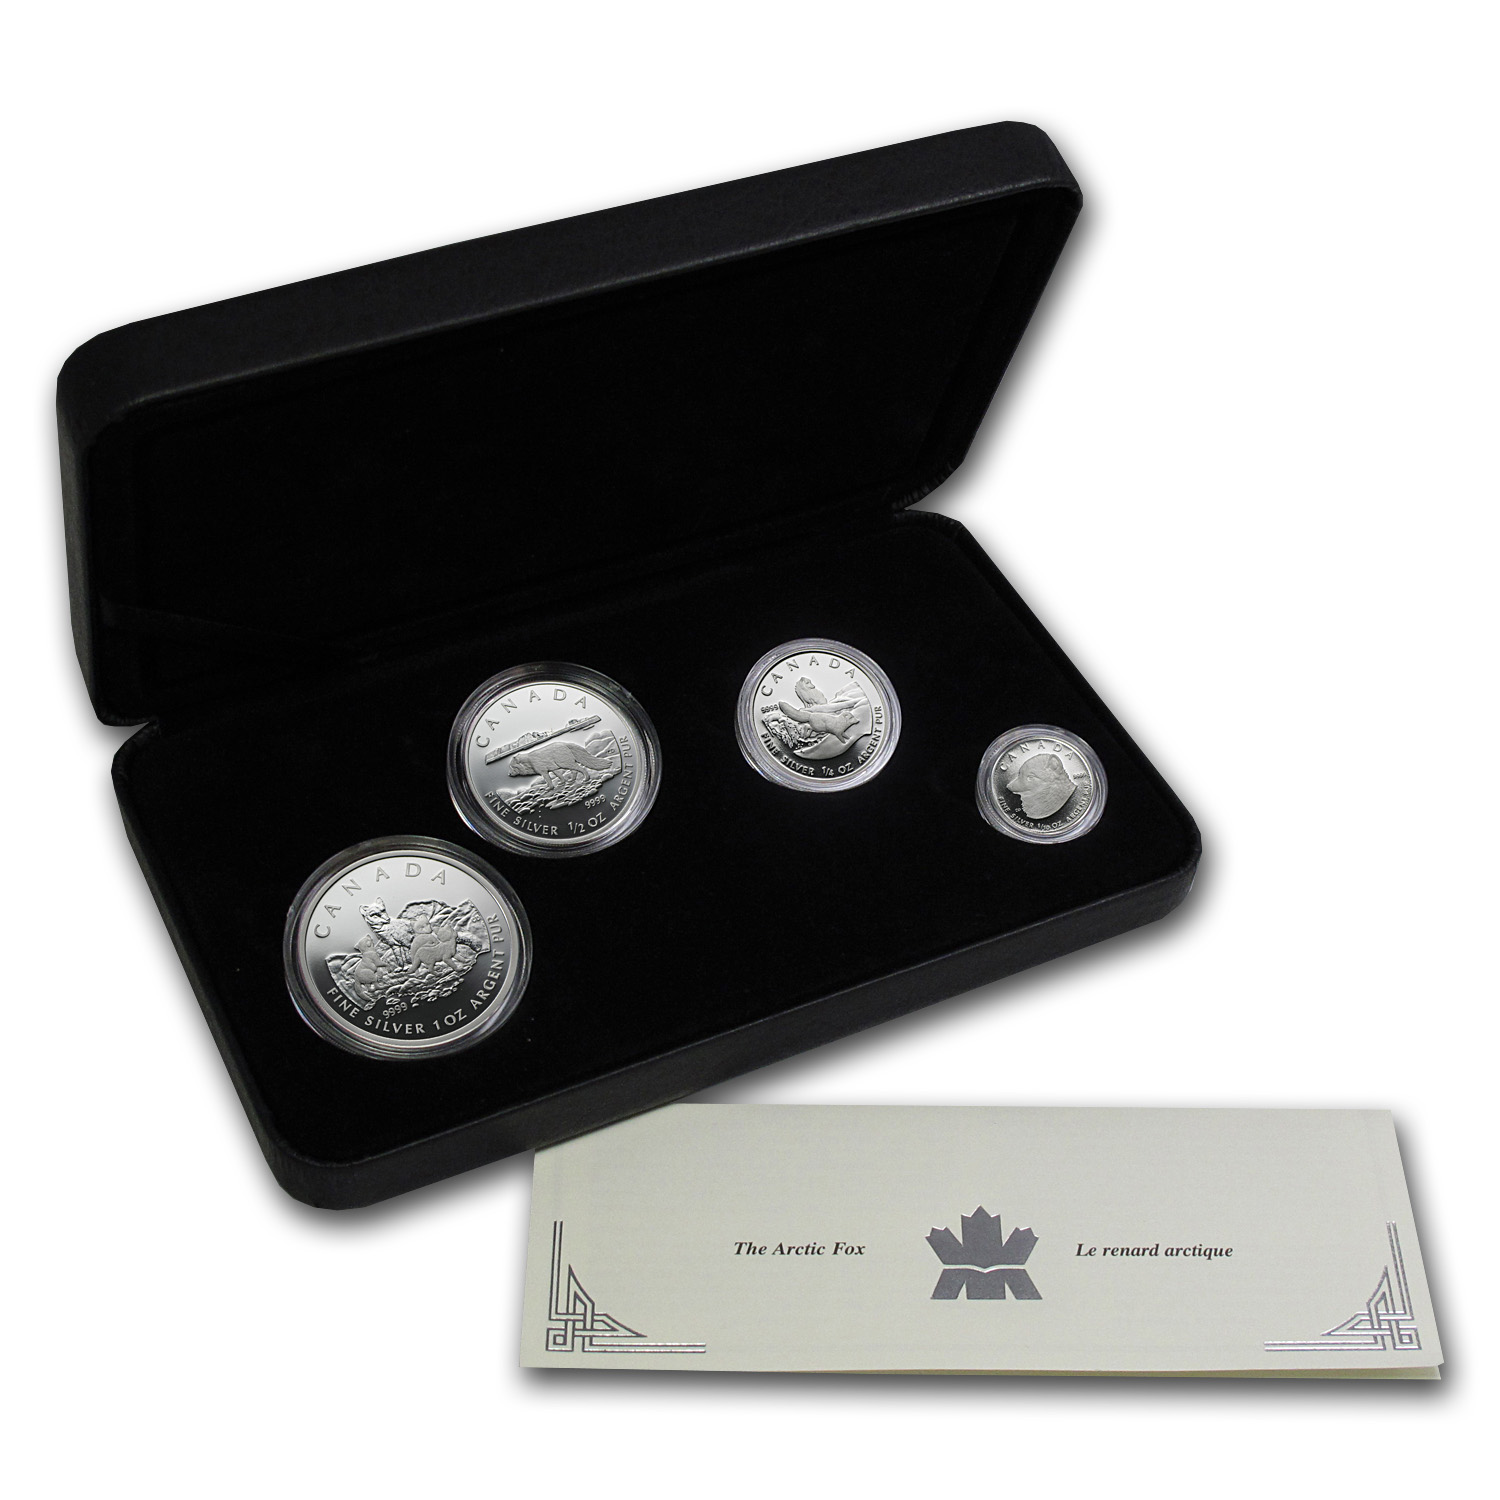 2004 4-Coin Silver Canadian Arctic Fox Proof Set (w/Box & COA)